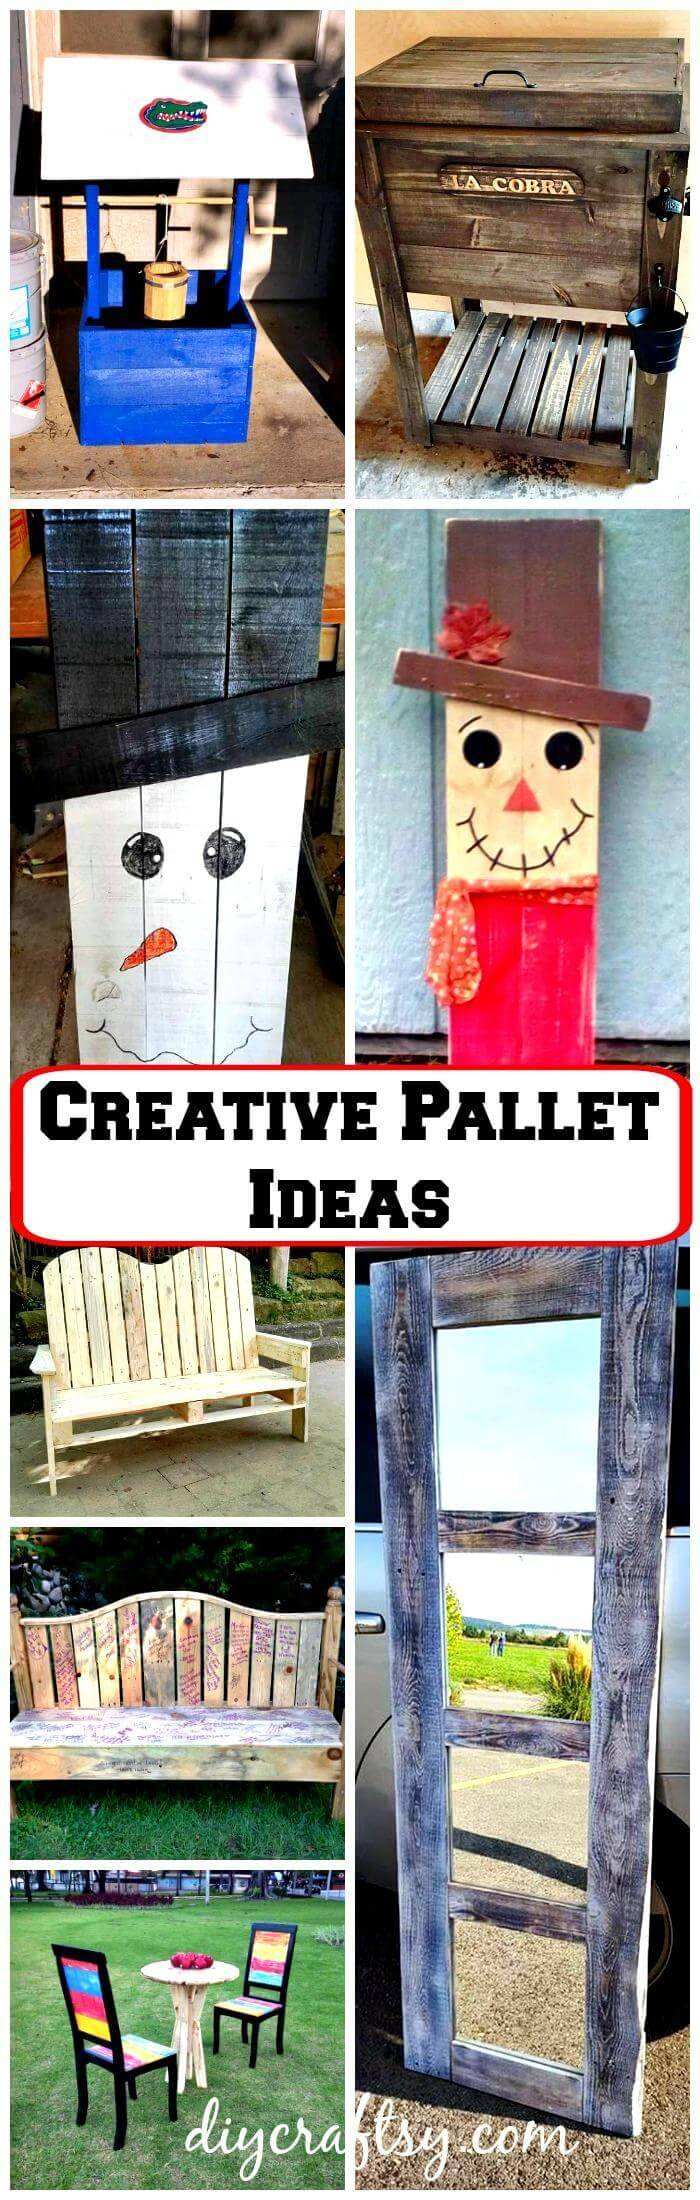 20 Creative Pallet Ideas To Decorate Your Home Diy Amp Crafts